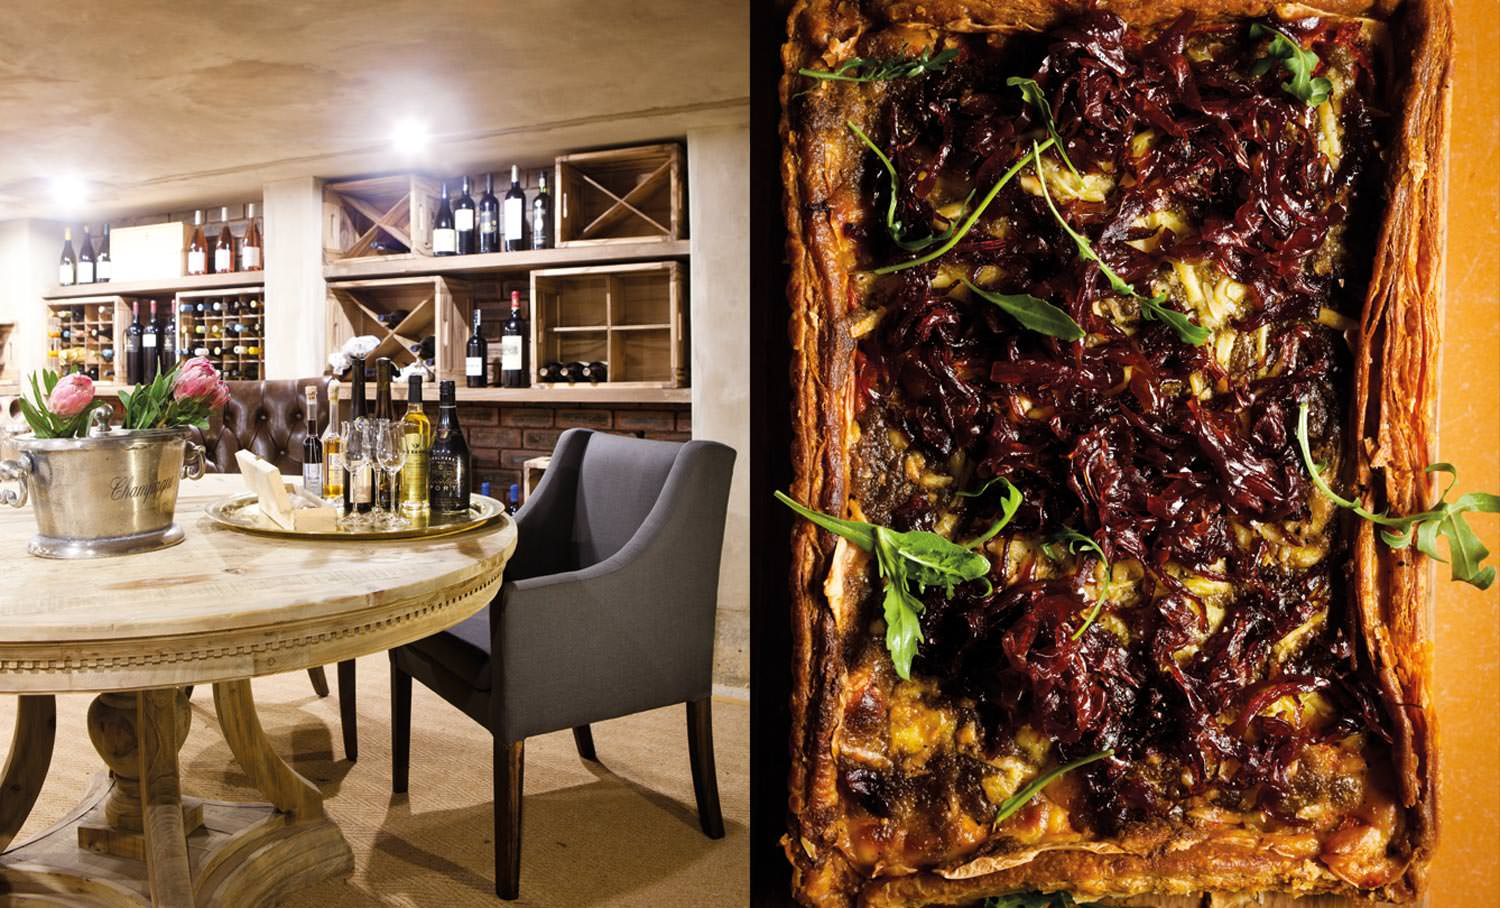 A caramelised onion tart made by Rai-Teree Dass and Cara Conway for sale in the outlet; the wine cellar is located under the house and contains Jackie's collection – guests will be able to store their wine there under lock and key.